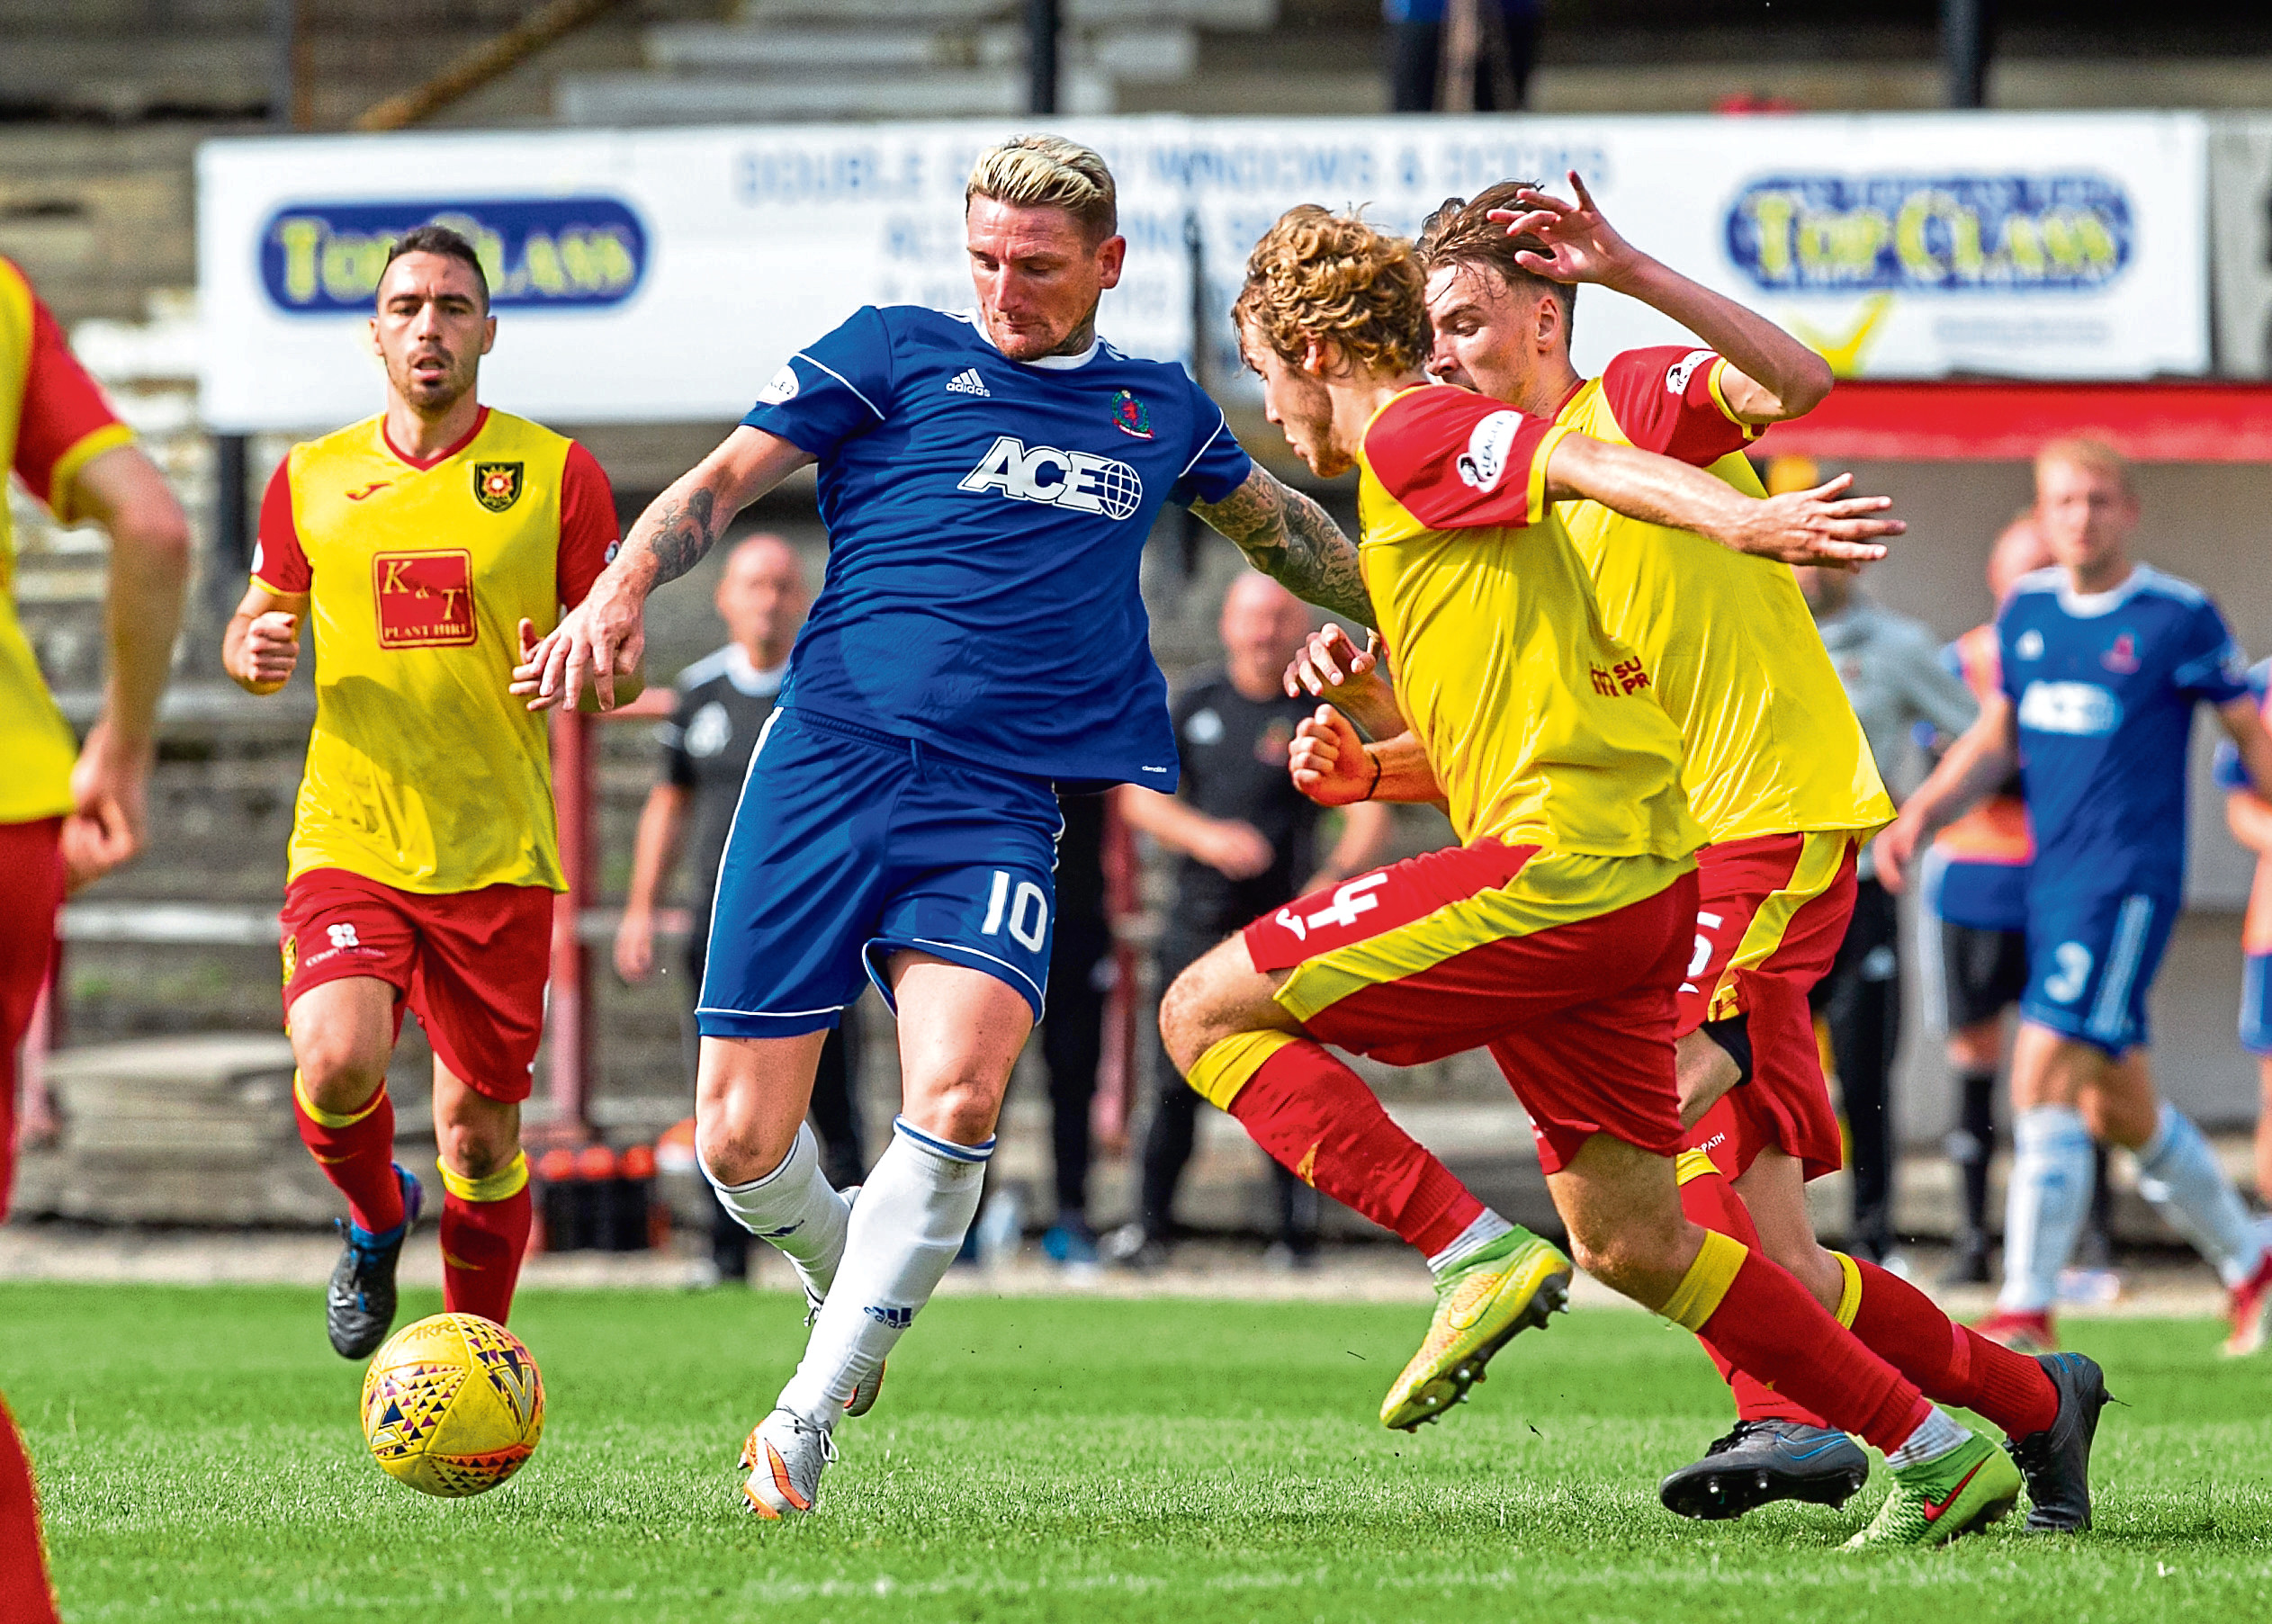 Scott scored four times for Cove.